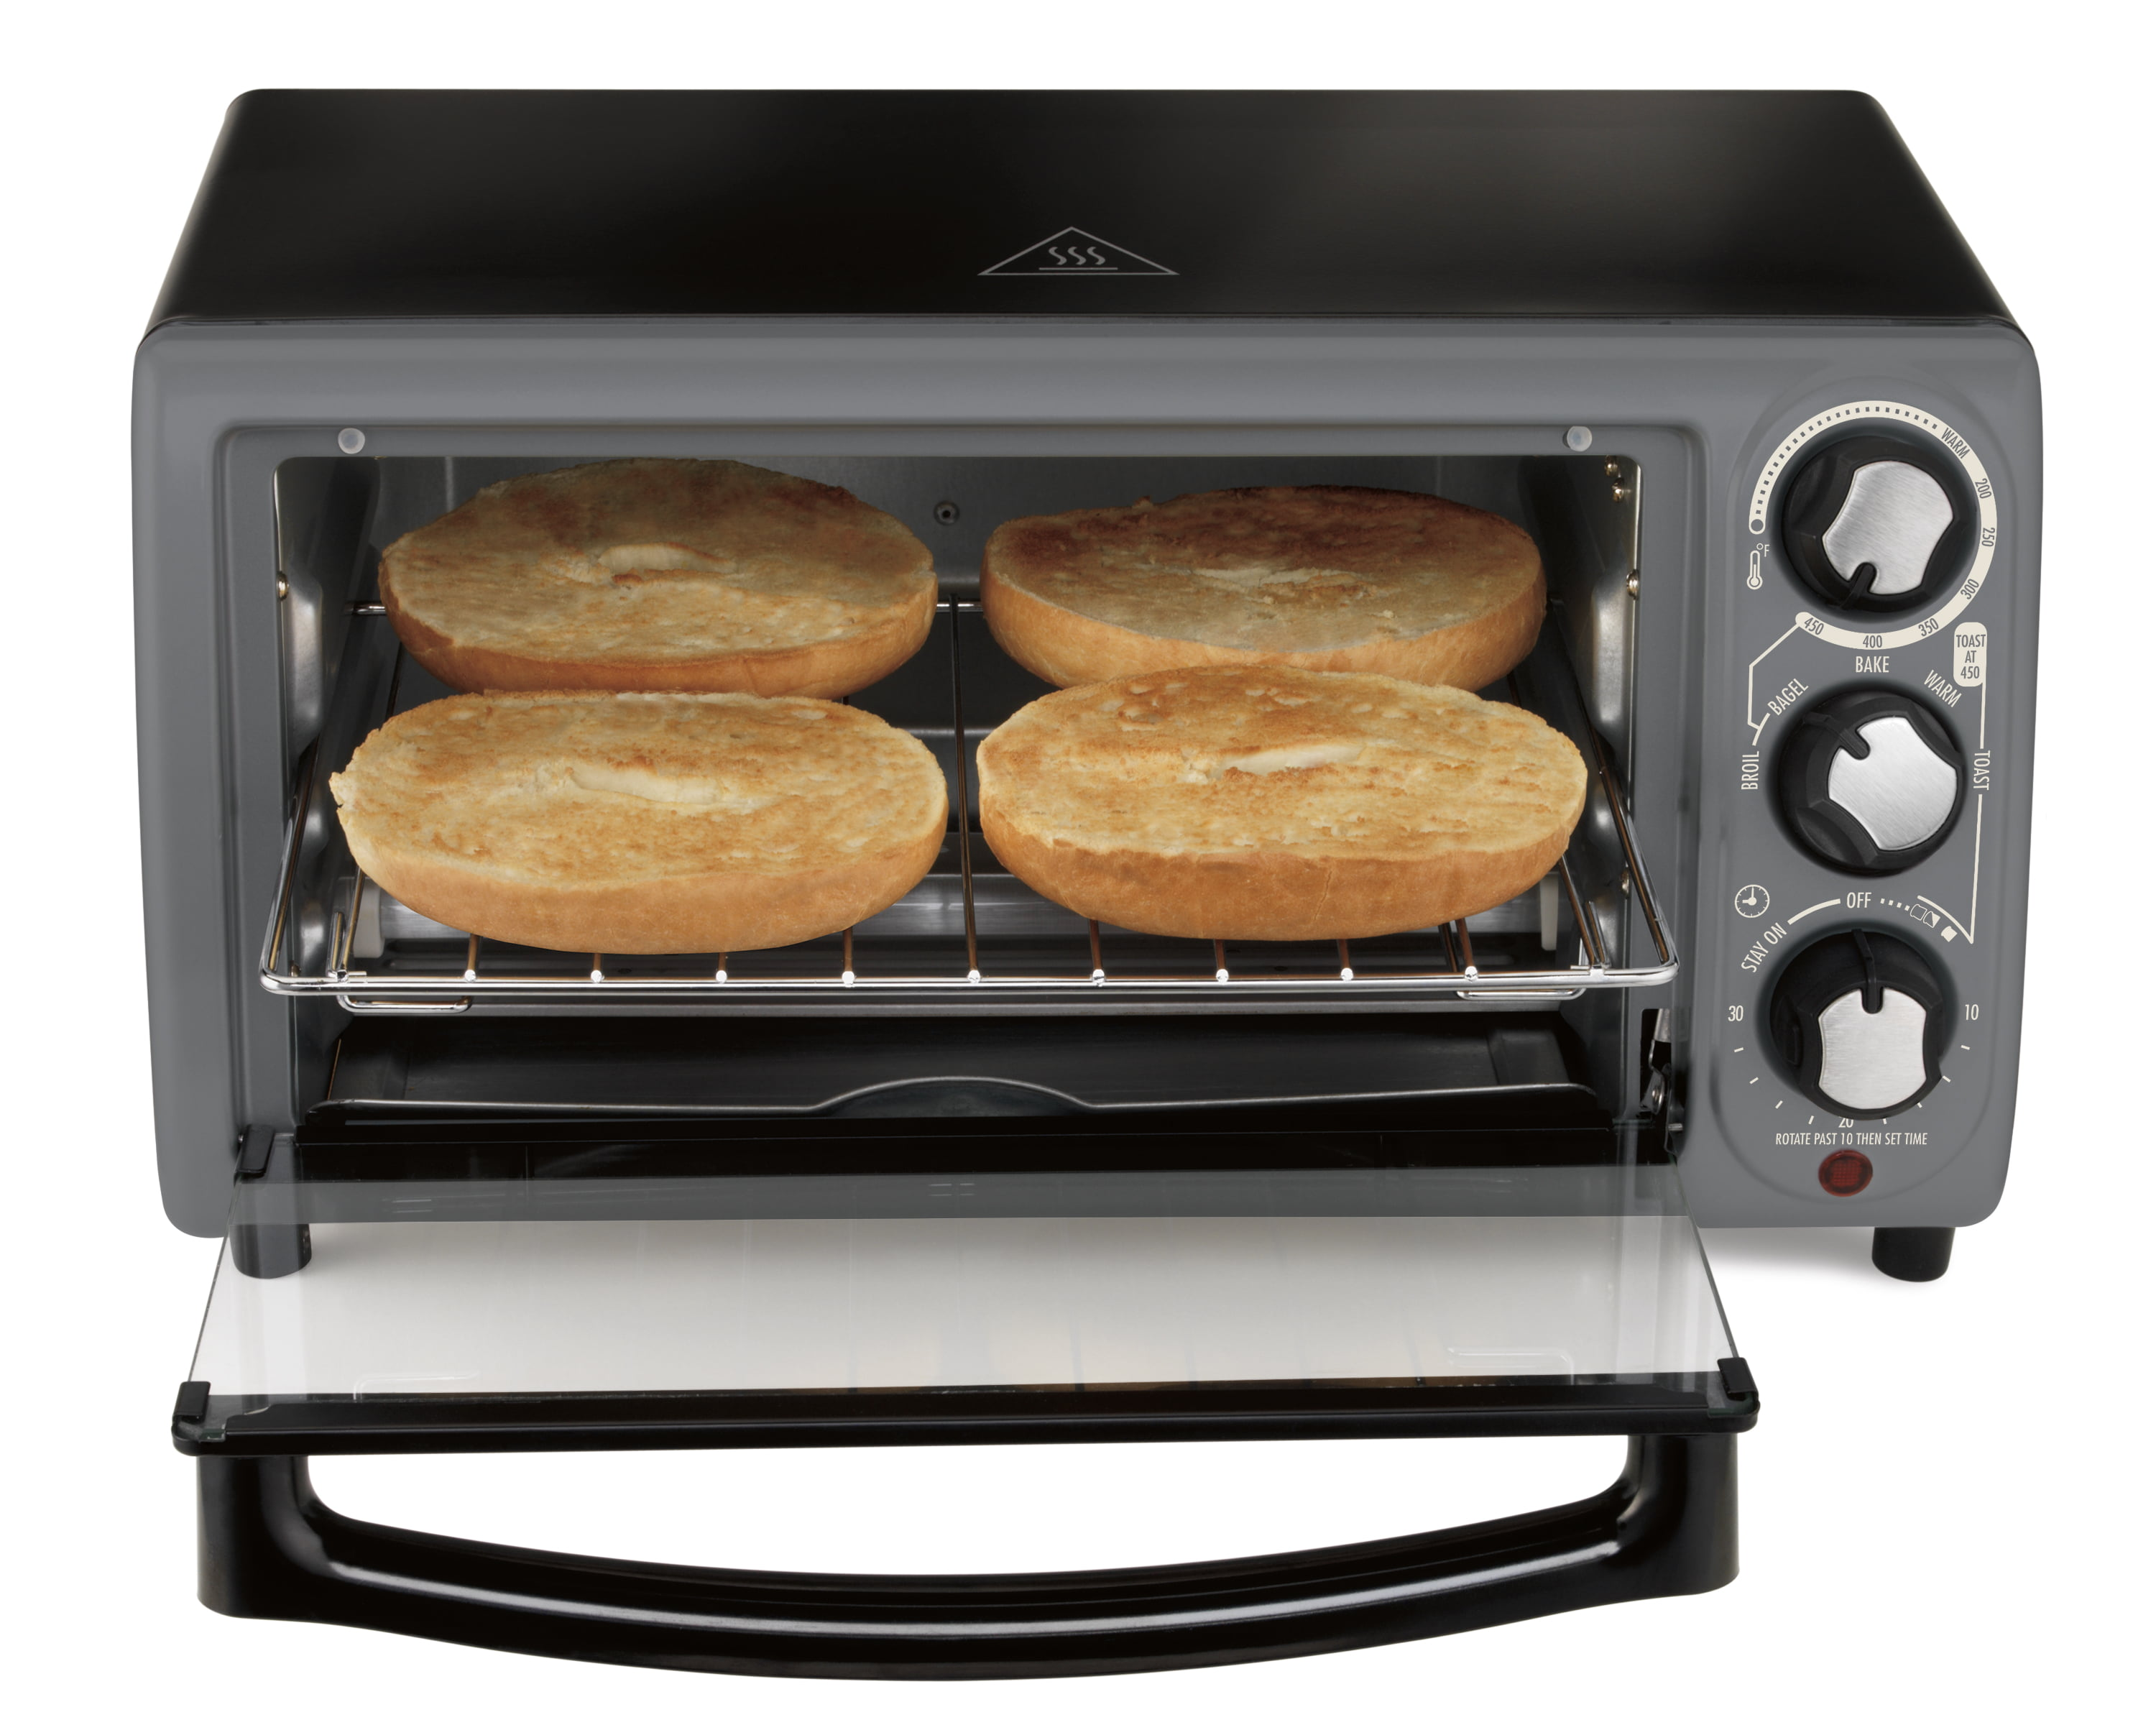 black minute stainless steel pizza toaster decker maker snack oven blackdecker